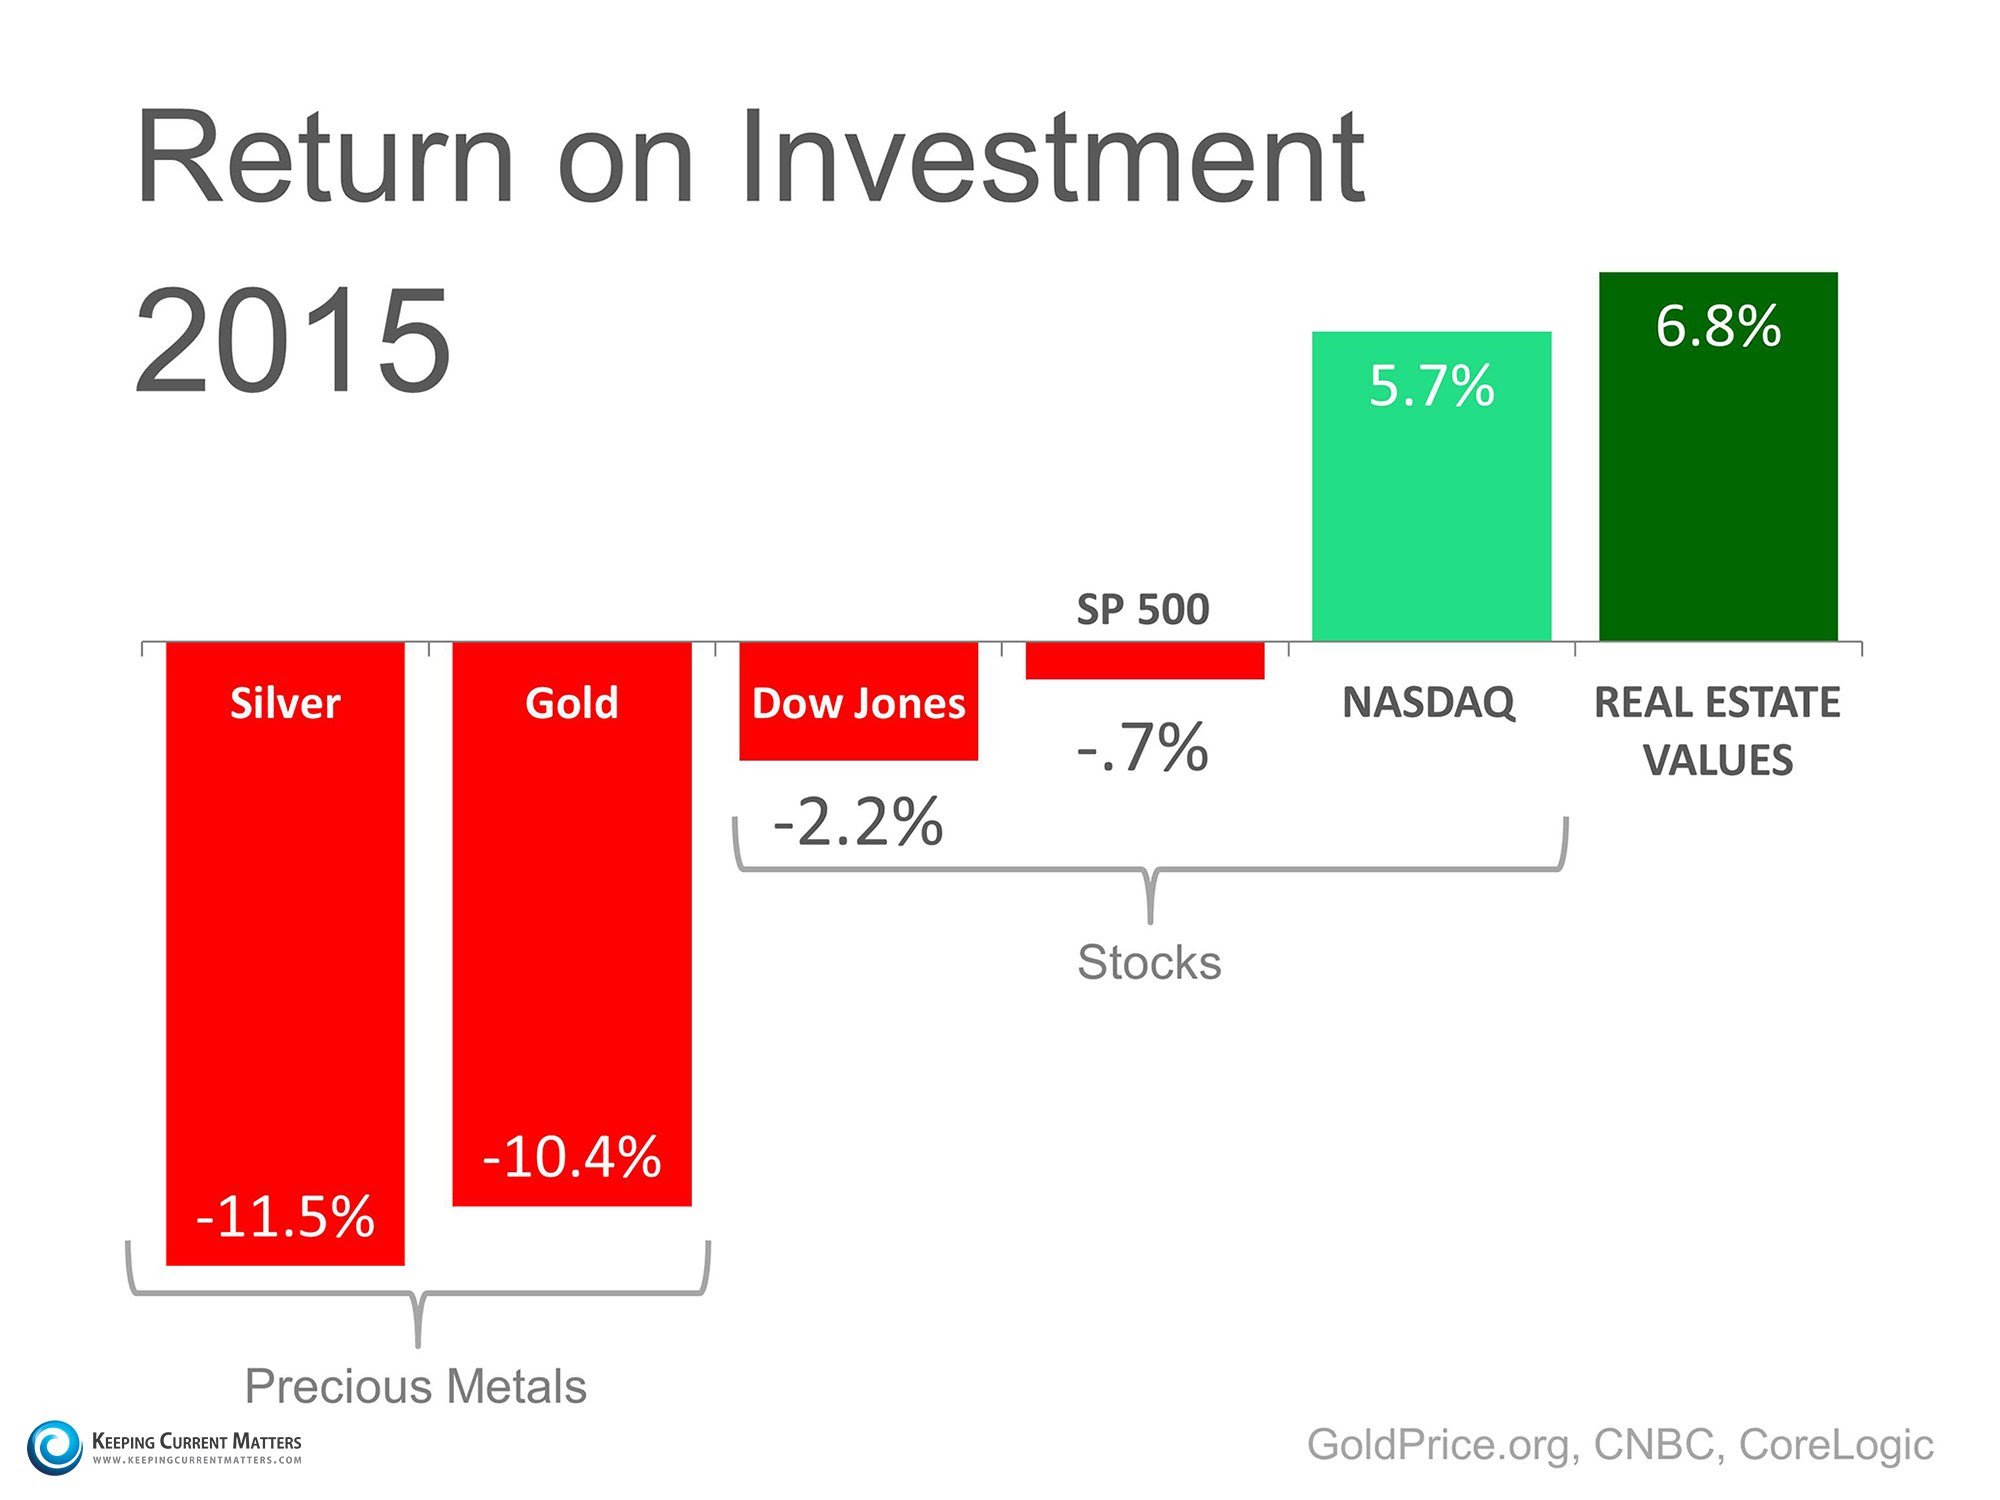 2015 Return on Investment   Keeping Current Matters